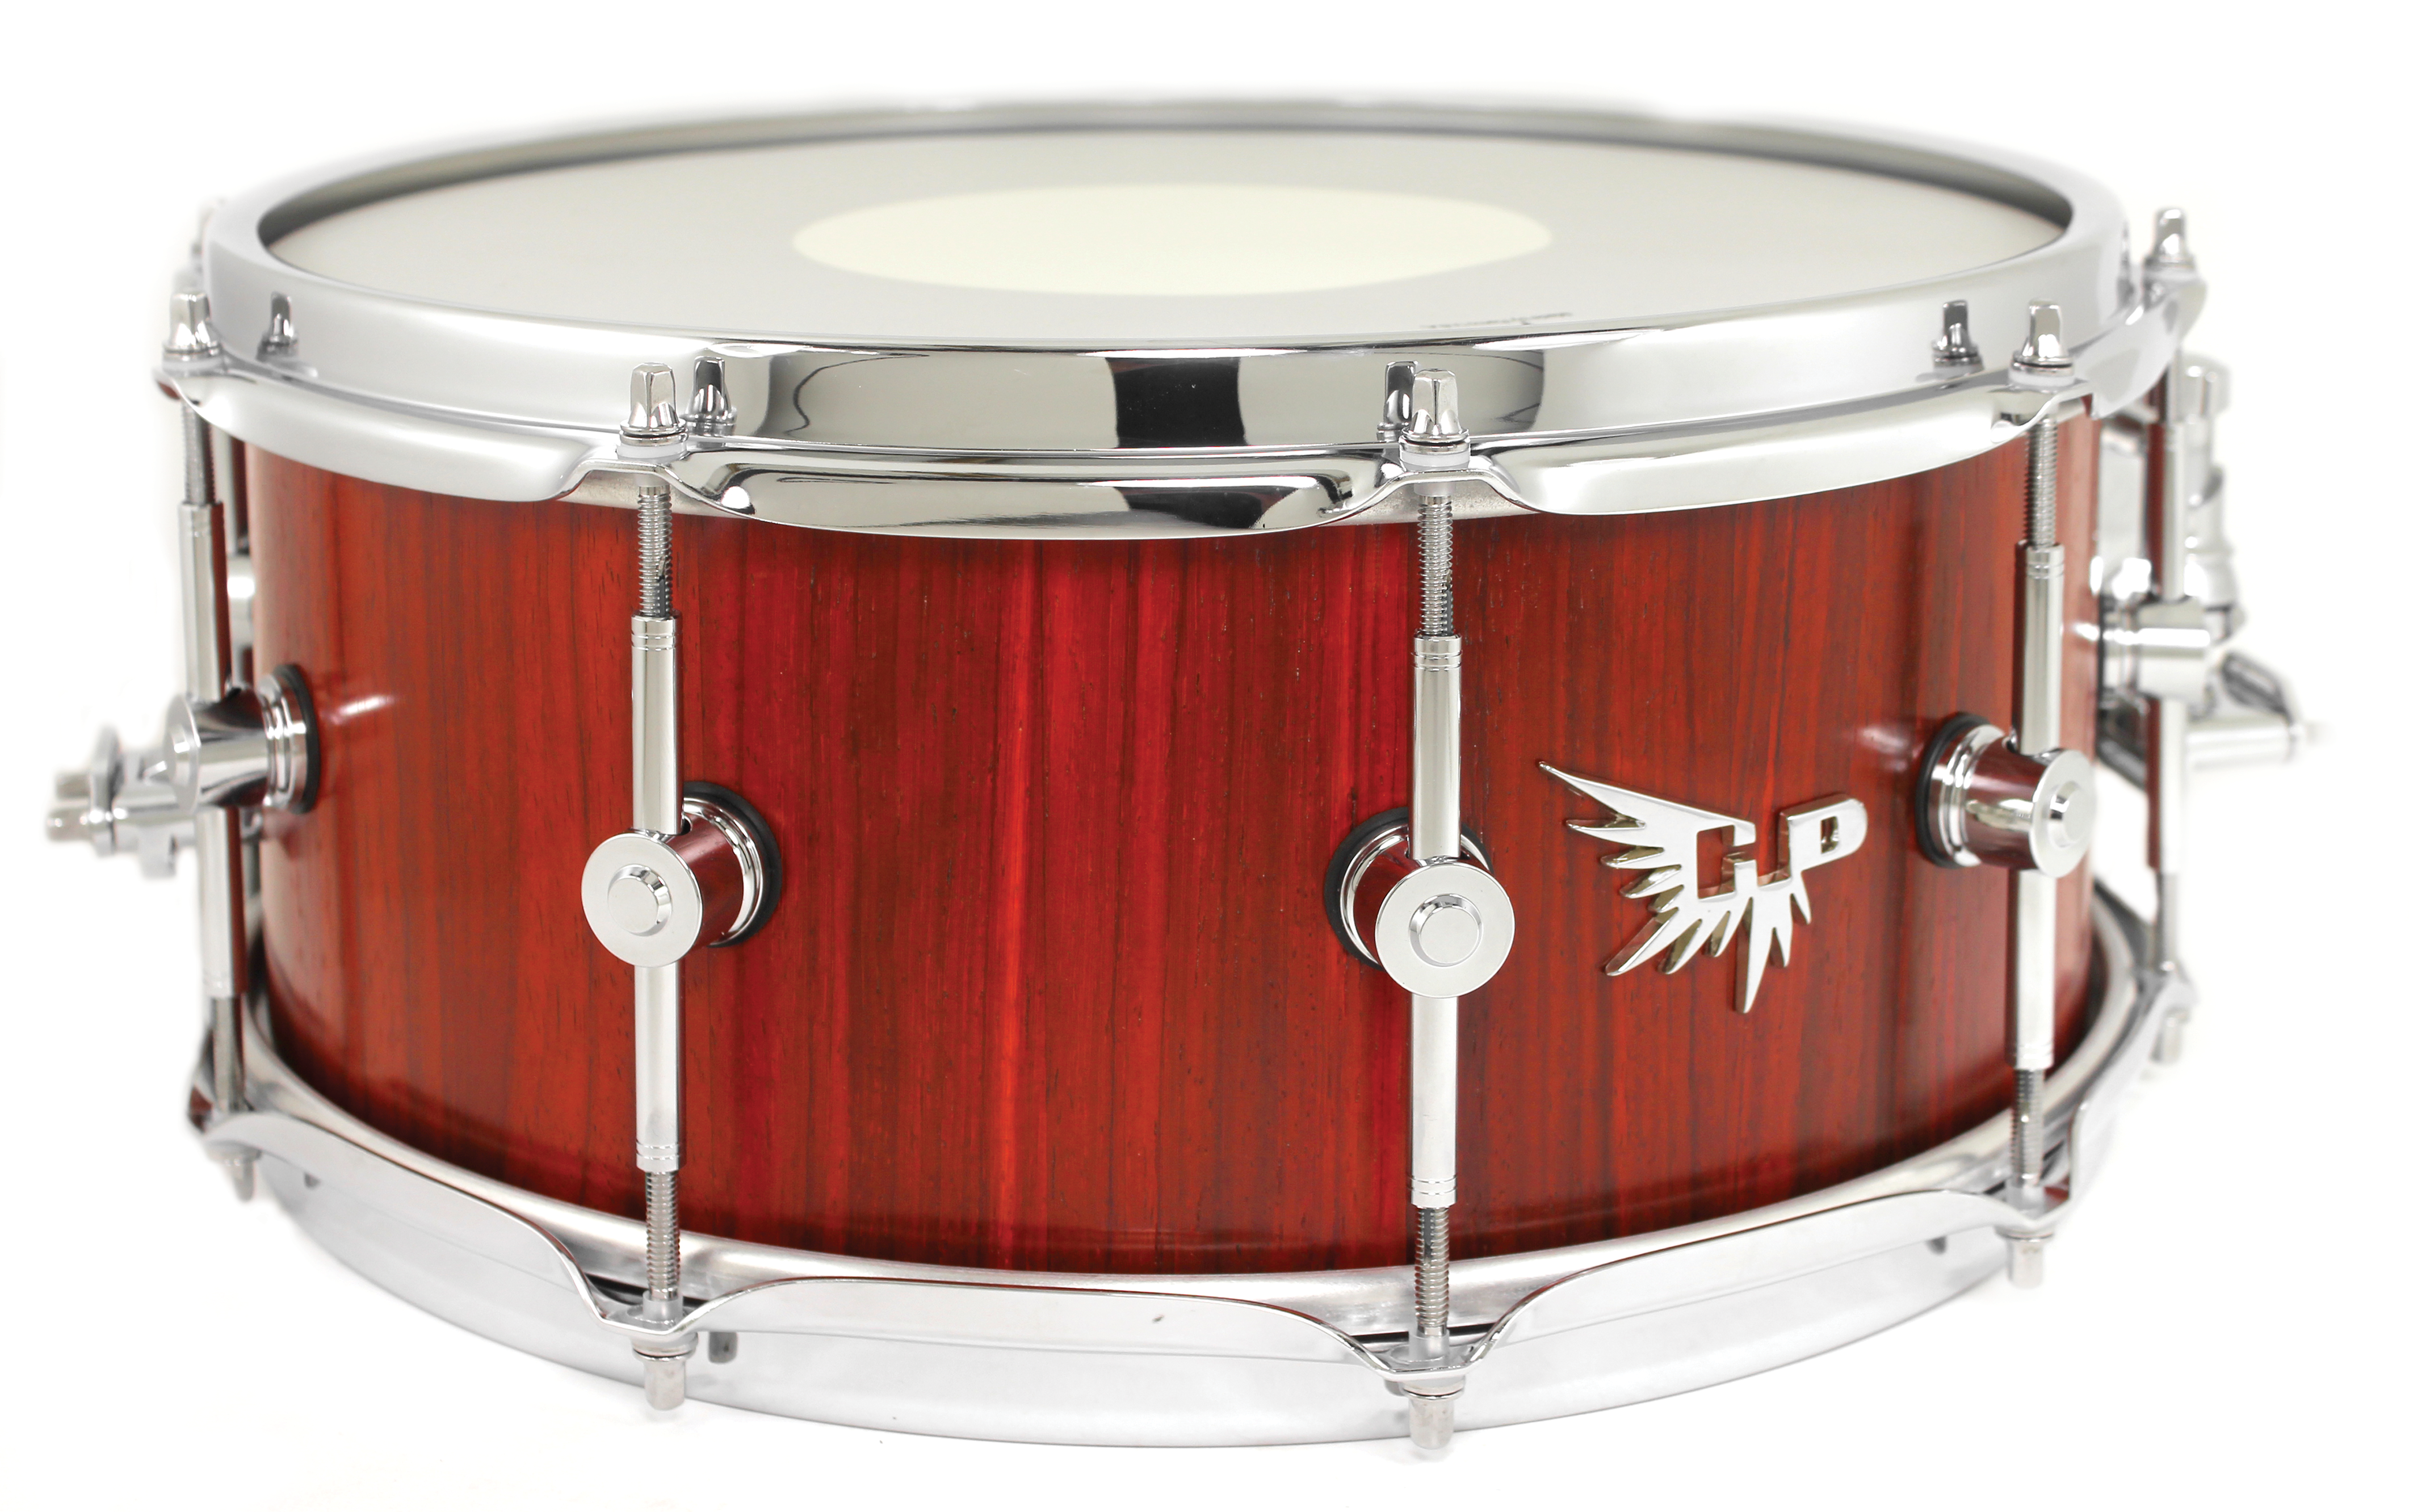 Archetype series snares come equipped with other high-end features, such as  proprietary solid-aluminum, distance-adjustable chrome lugs, PlusPng.com  - PNG Snare Drum